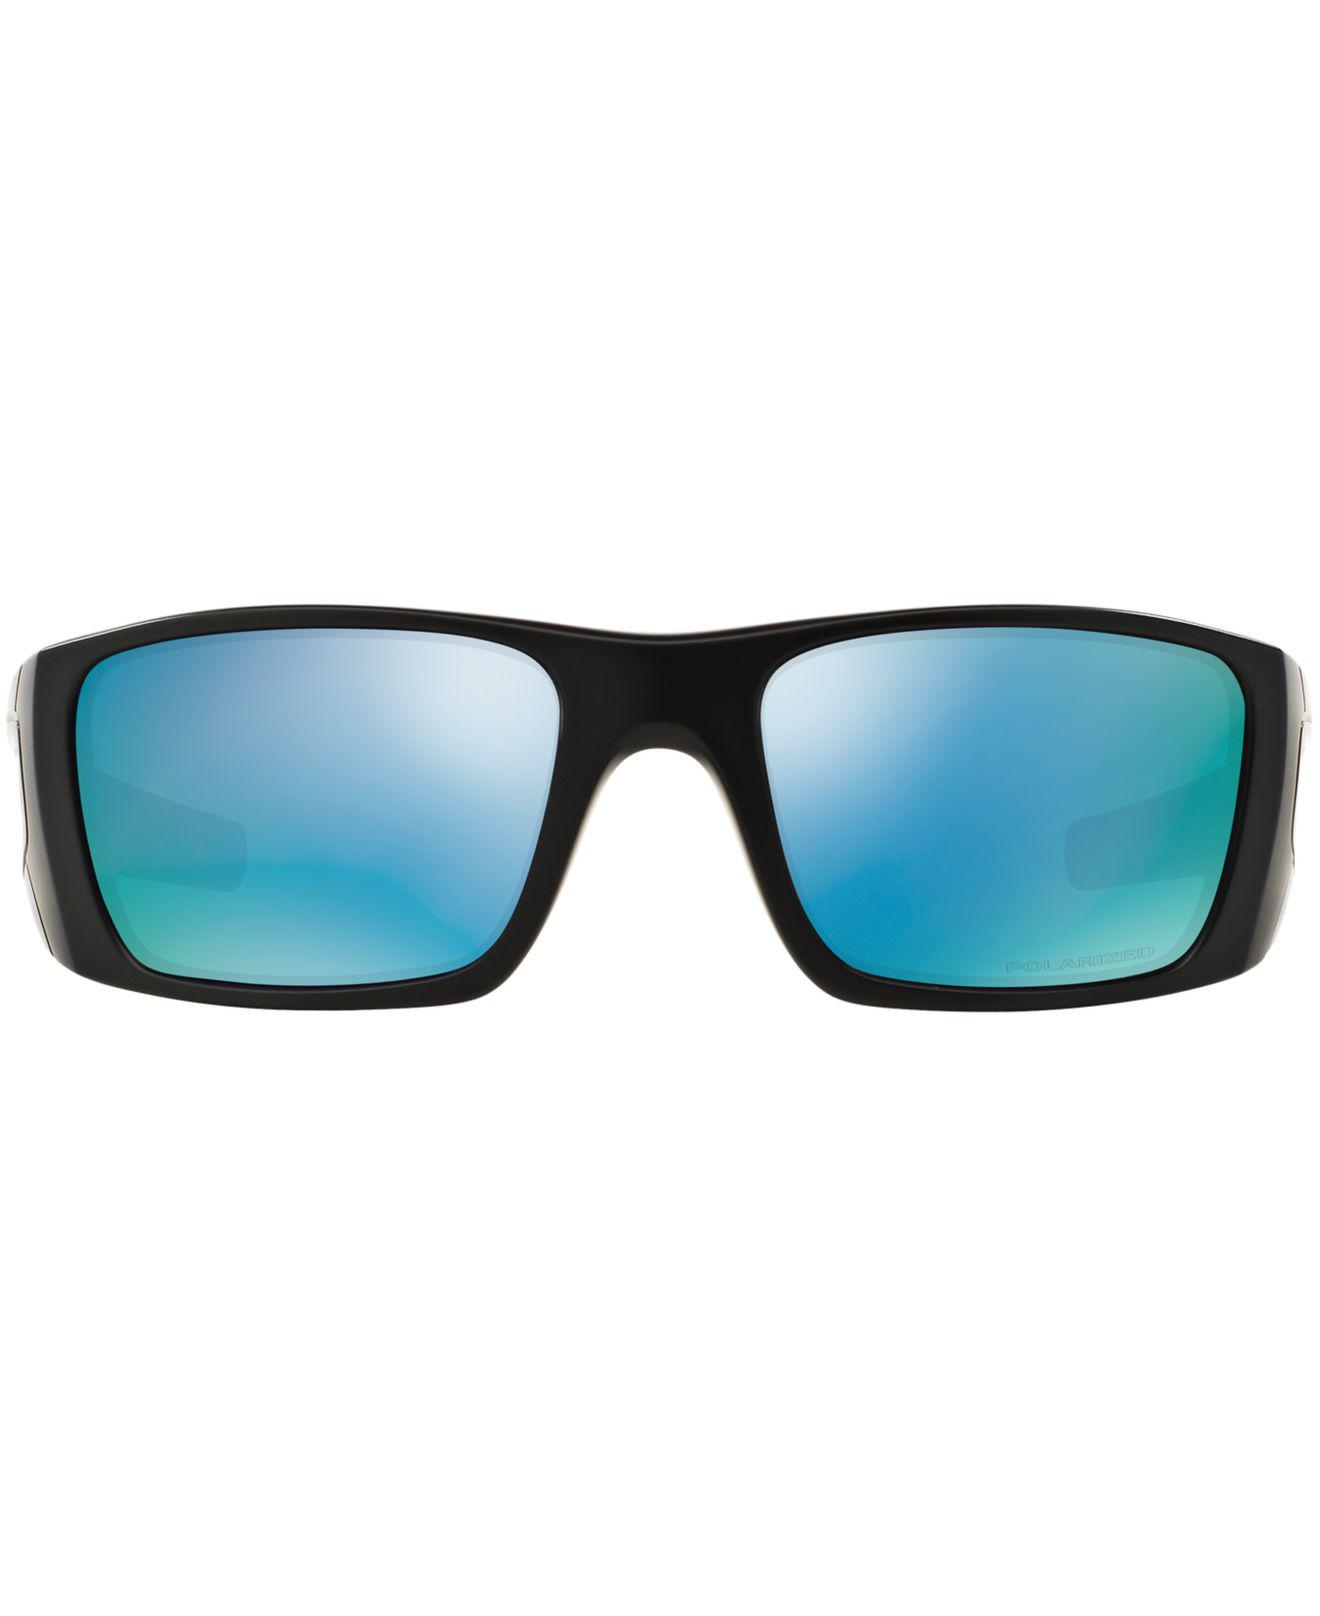 4b450fe453 Lyst - Oakley Oo9096 Fuel Cell Prizm Deep H20 in Blue for Men